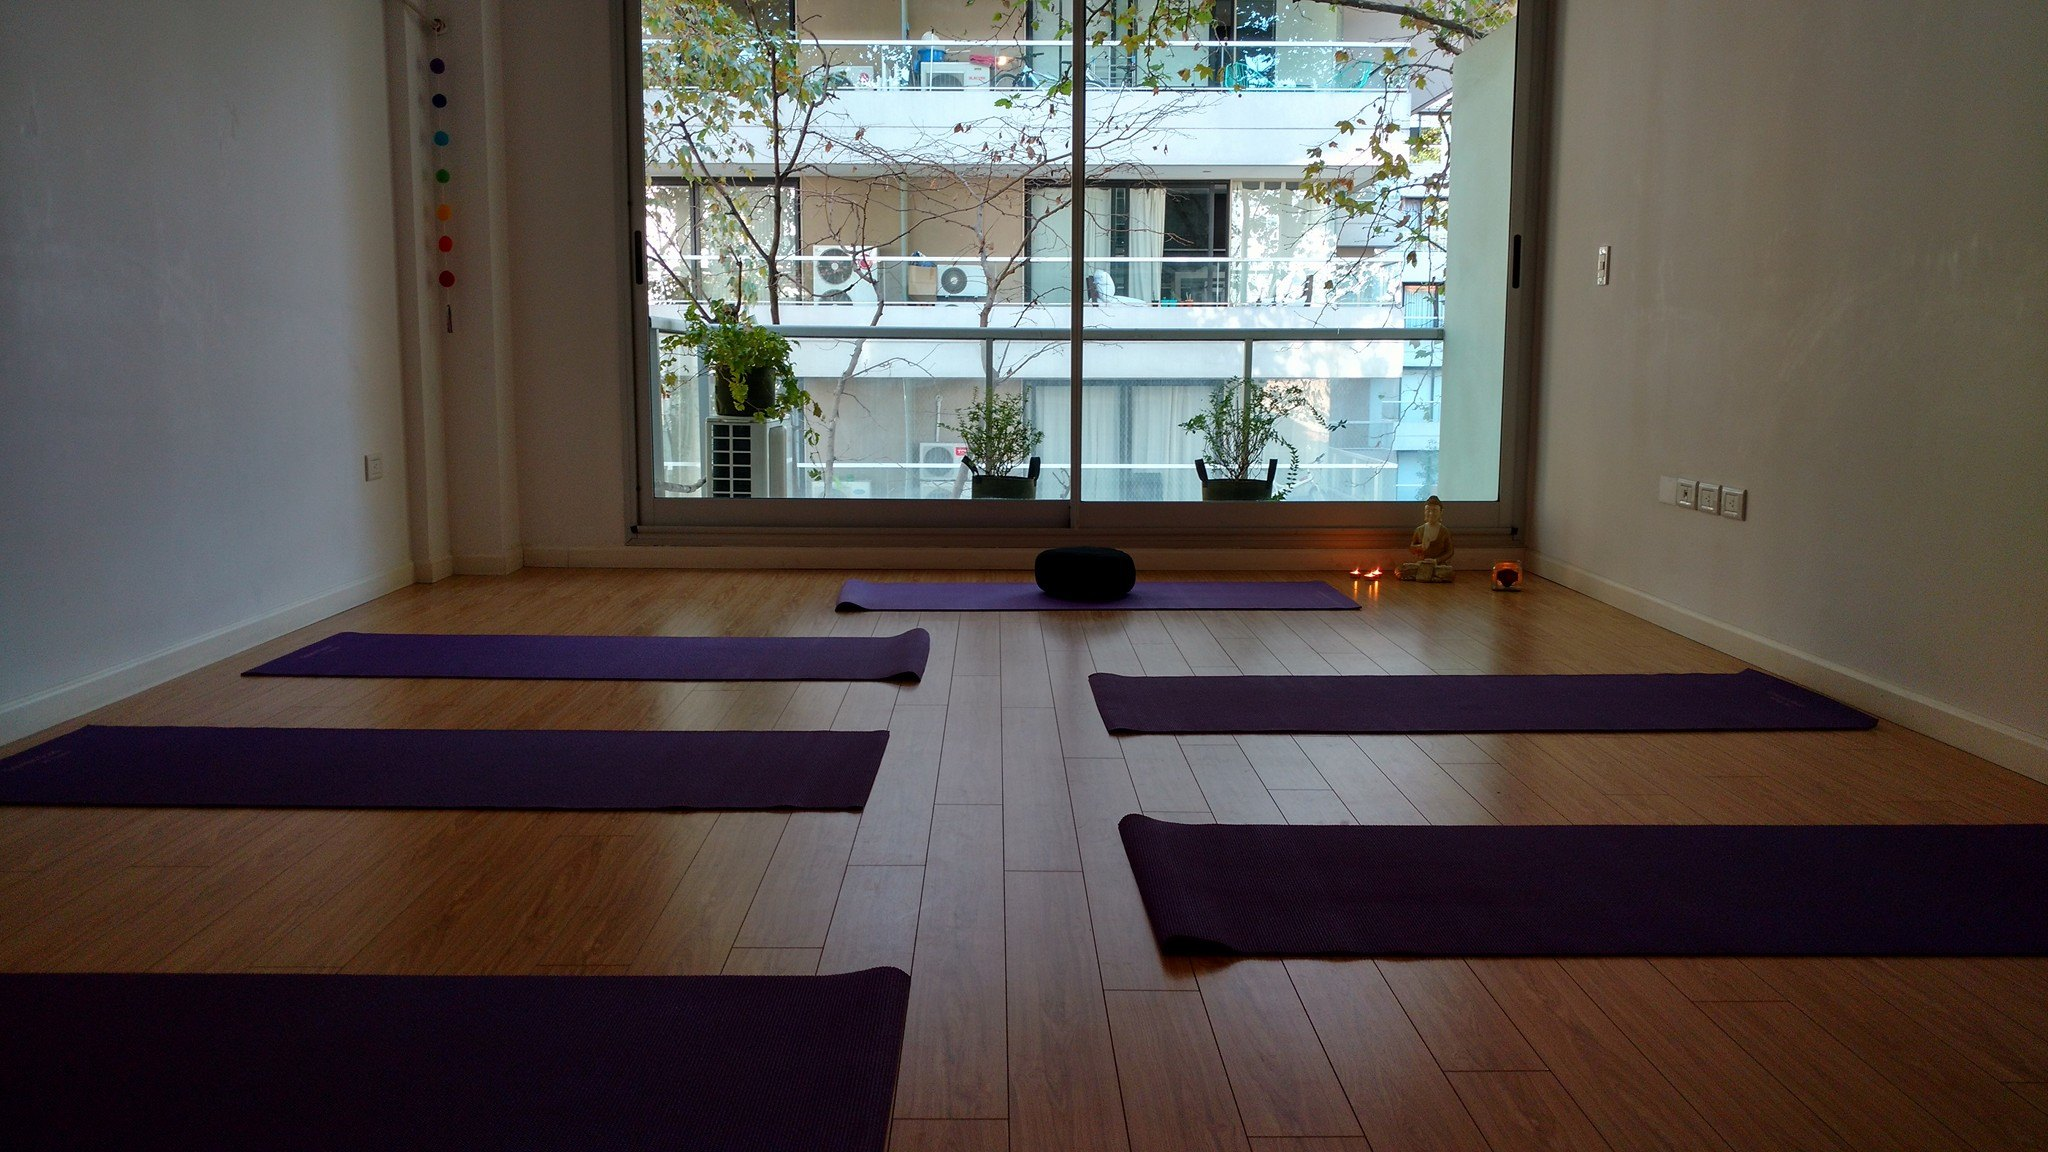 Clases de Yoga en Palermo Hollywood ae721b3c1a8d